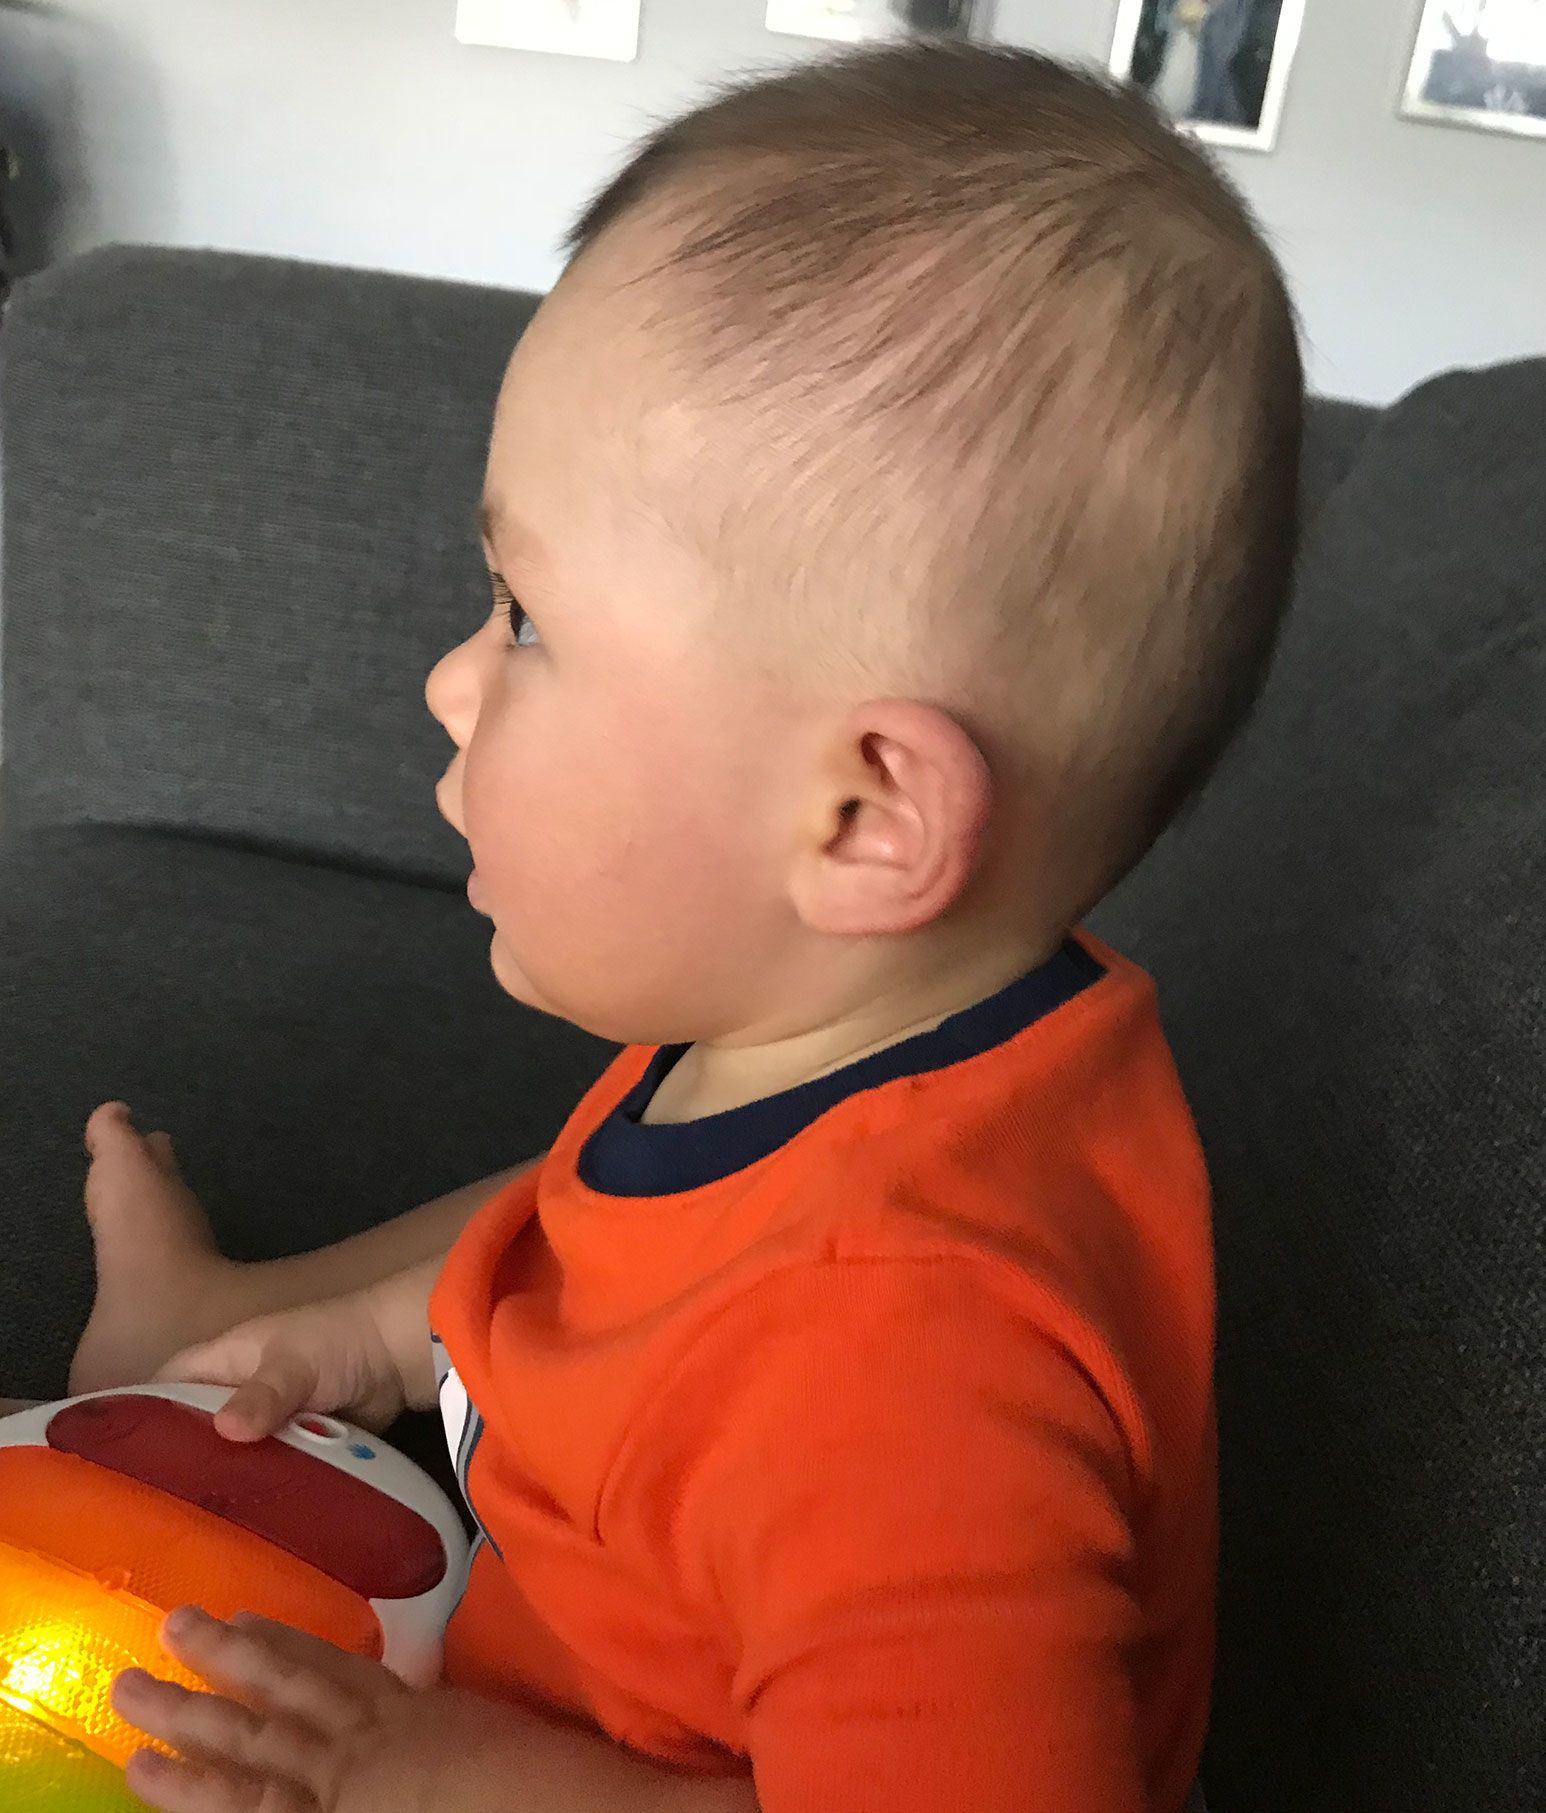 Side profile of a baby sitting on a couch playing with an electronic keyboard. His head is shaped round.